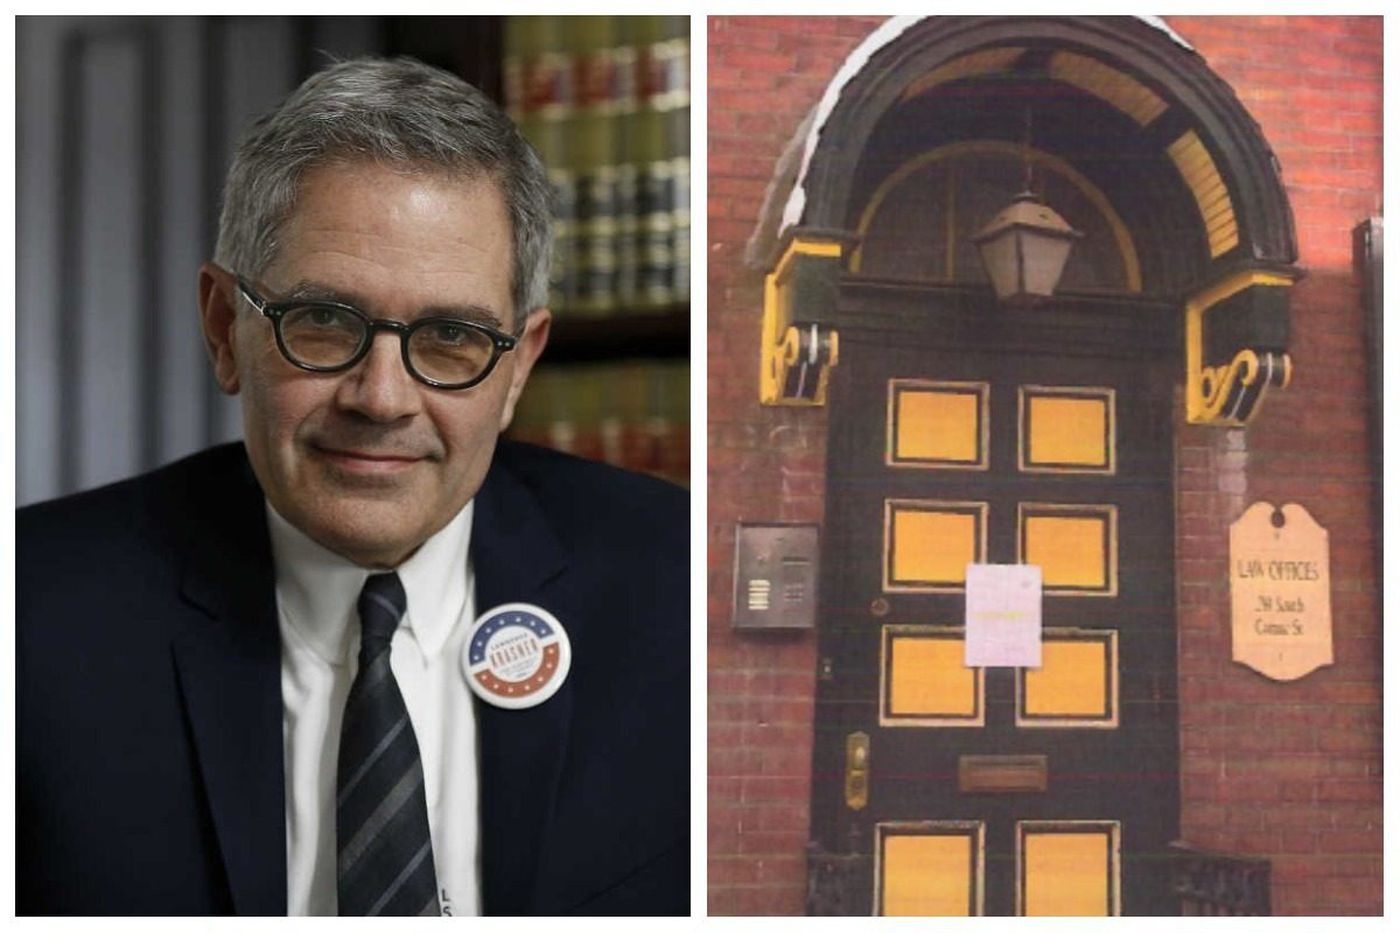 Philly DA Krasner's company owed $37K in property taxes in 2015